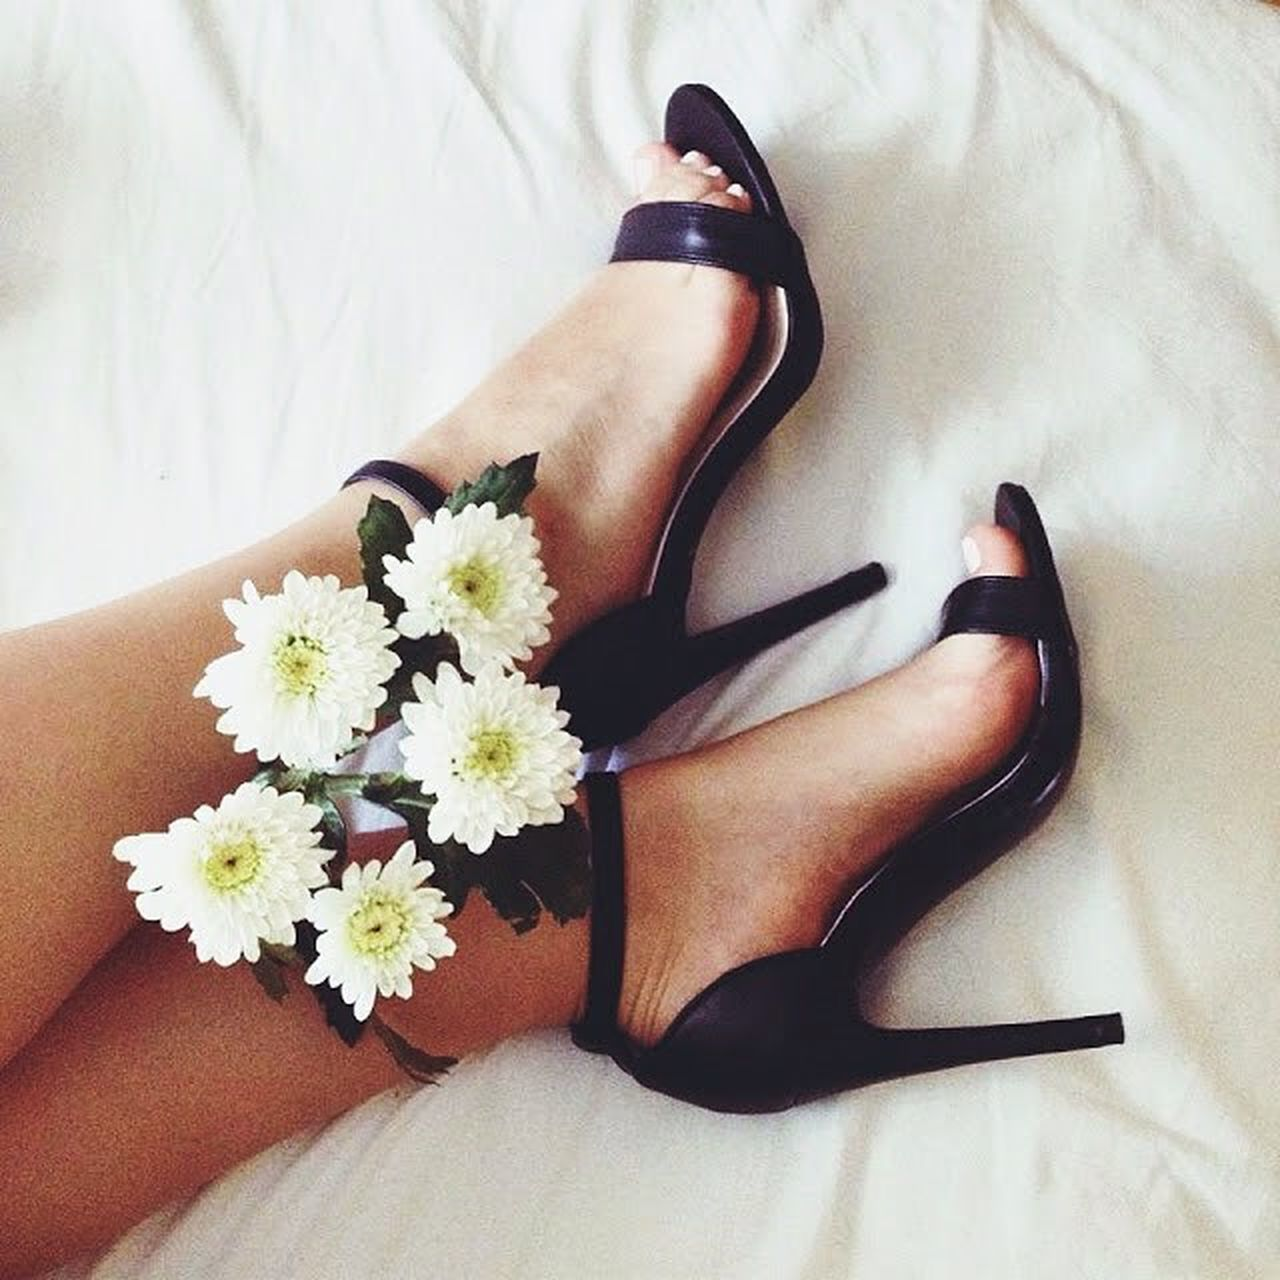 Blog Blogger Fashion Shoes Shopping Landroses Flower Plant Legs Art Kate Poland Deezee Sunday Weekend Beuty Beutiful  Hot Style Yop  Trendy 2015  Like IT 🐇☁️